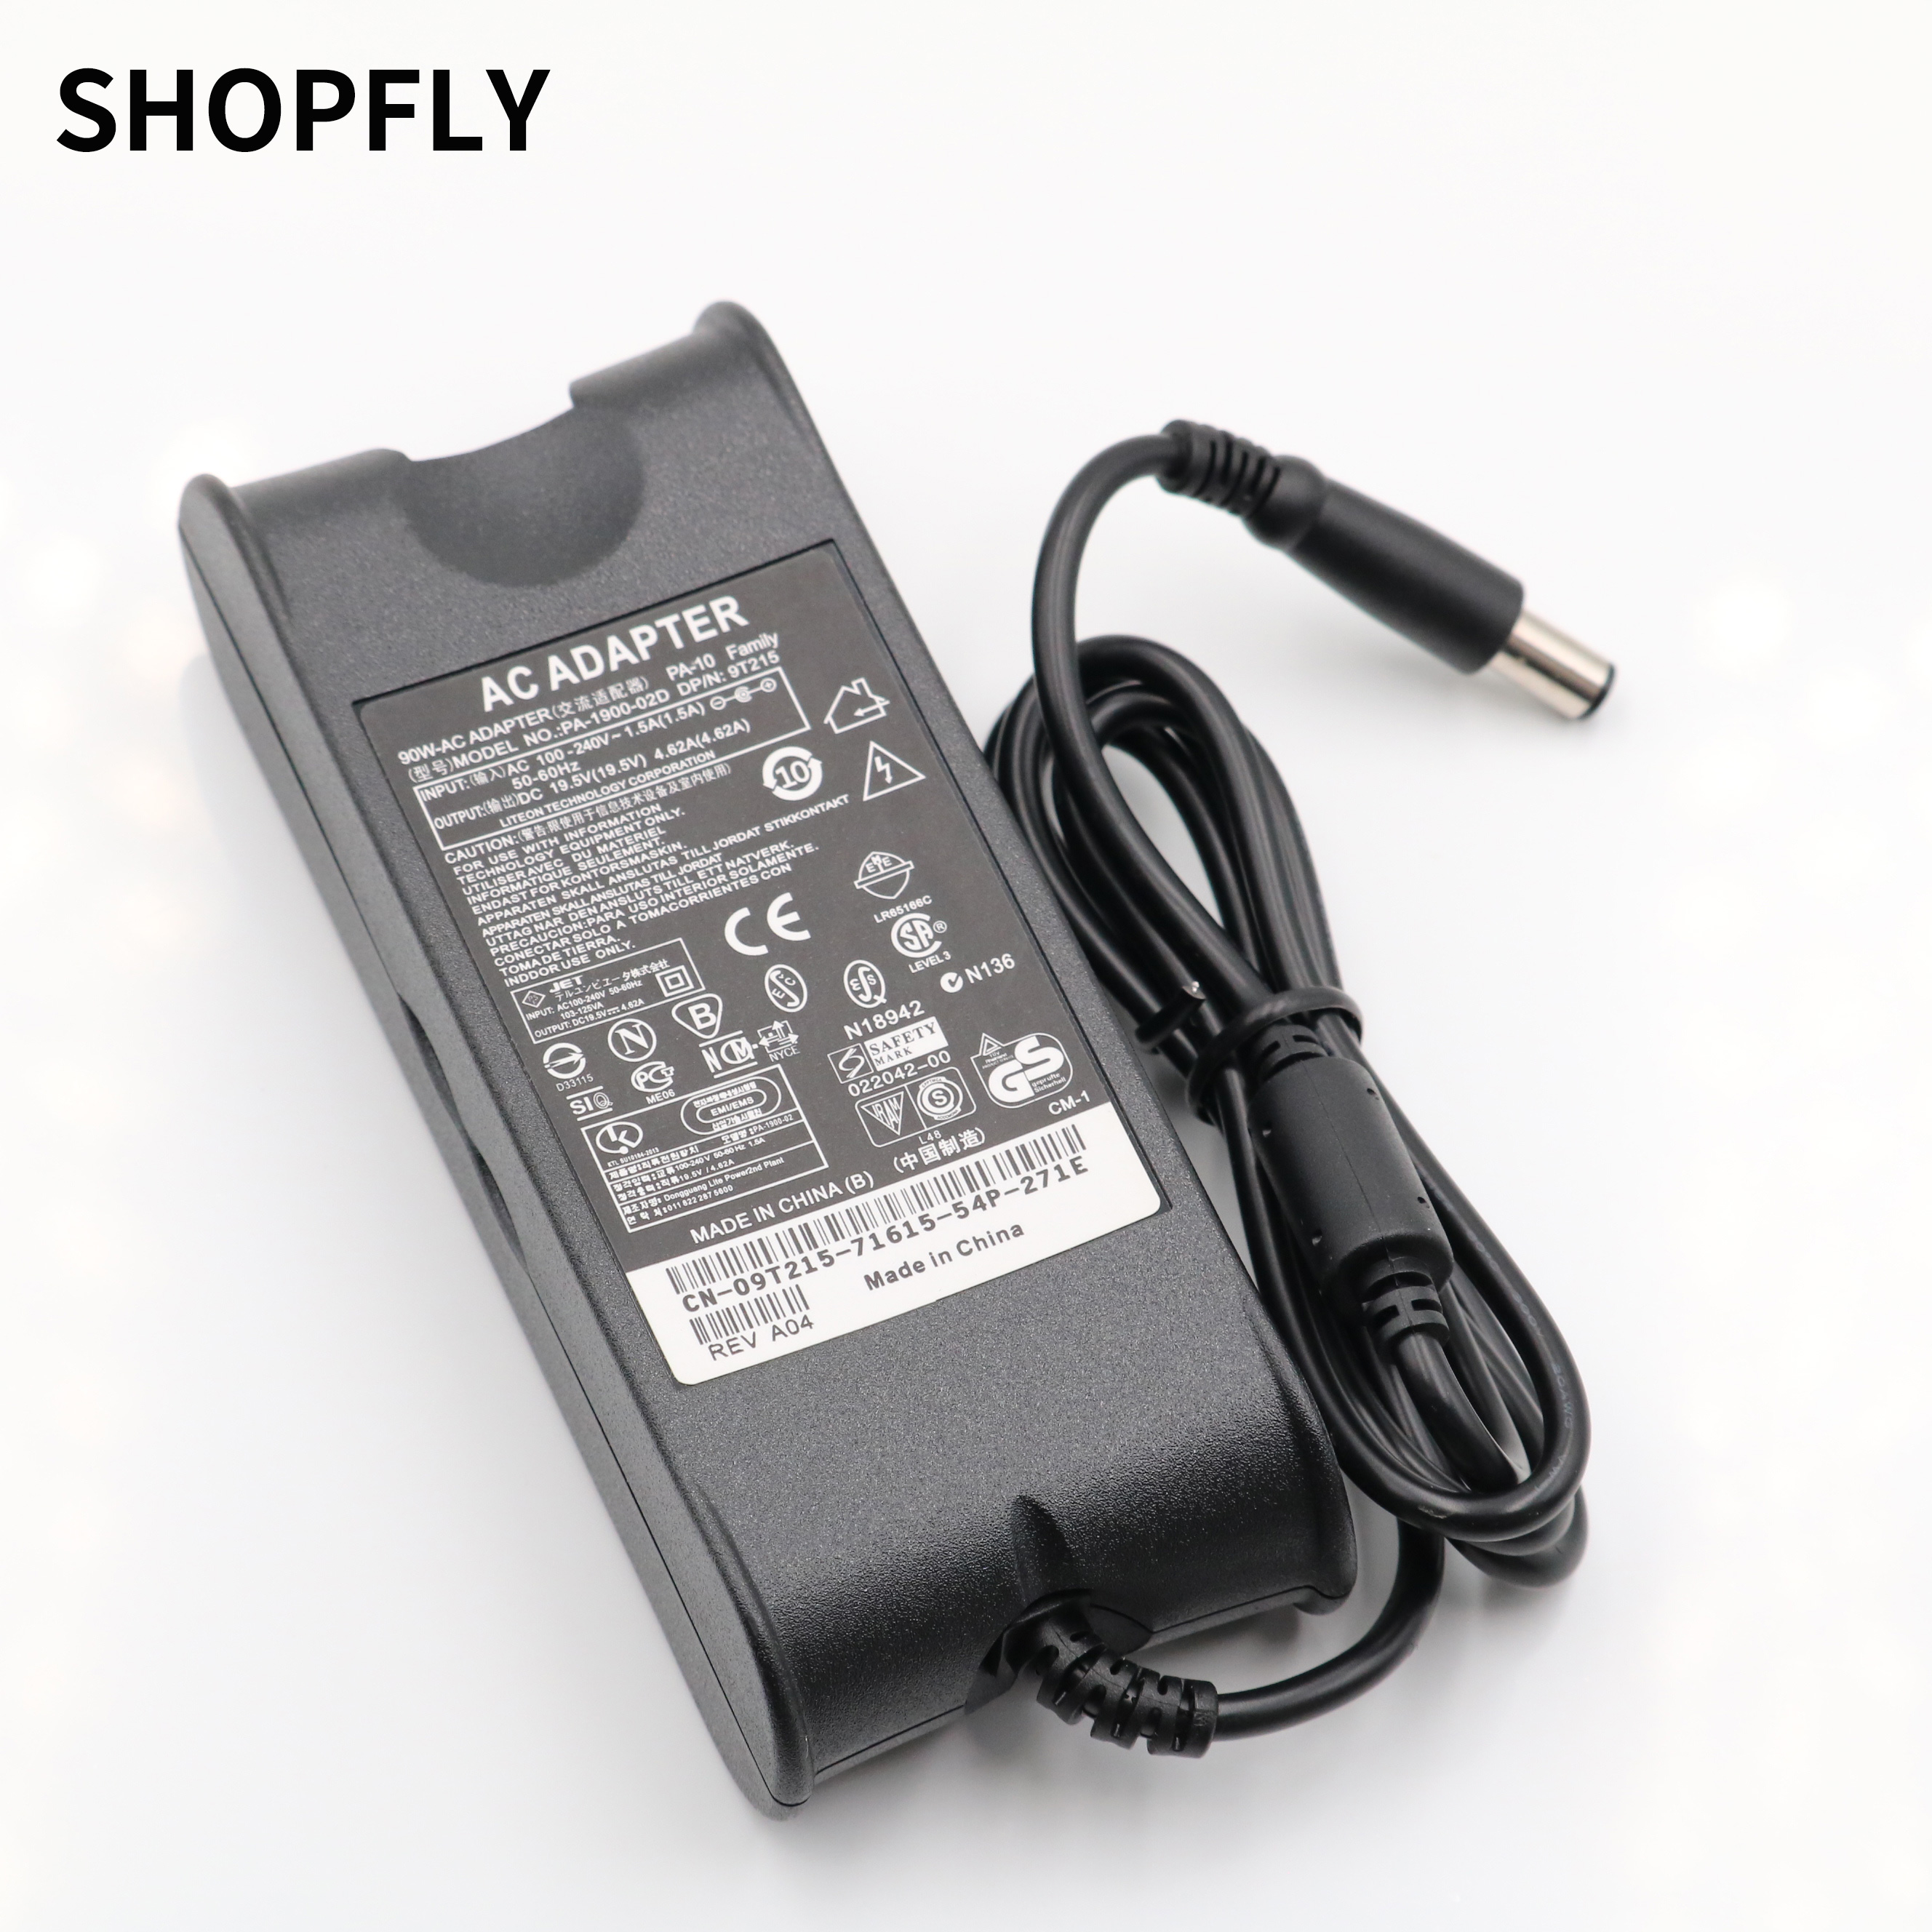 19.5V 4.62A 7.4*5.0MM Laptop Adapter Ac Adapter Power Supply Charger For Dell Latitude E6320 E6330 E6400 E6410 E6420 E6430